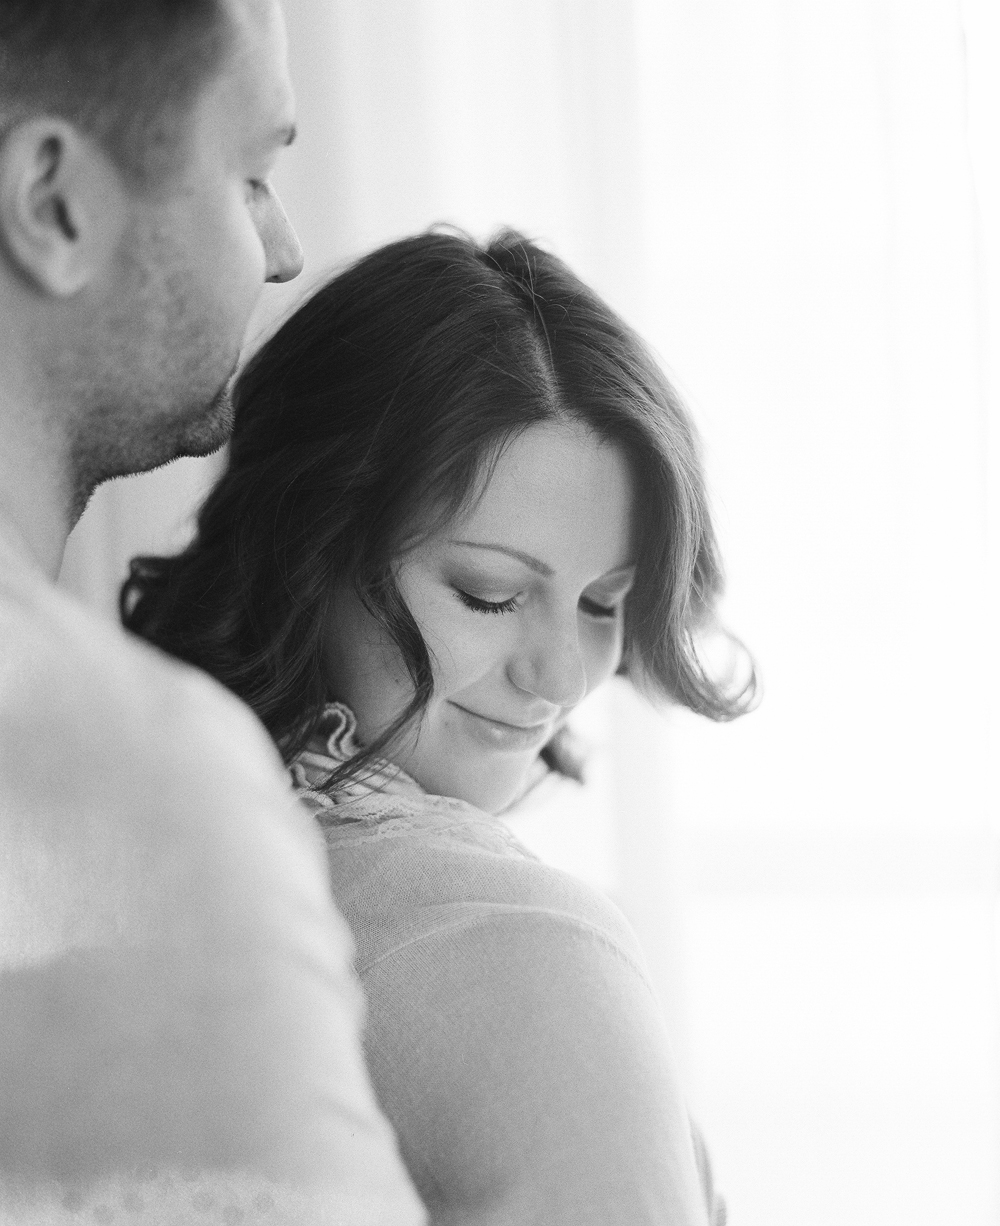 wausau-maternity-photography-film-004.jpg